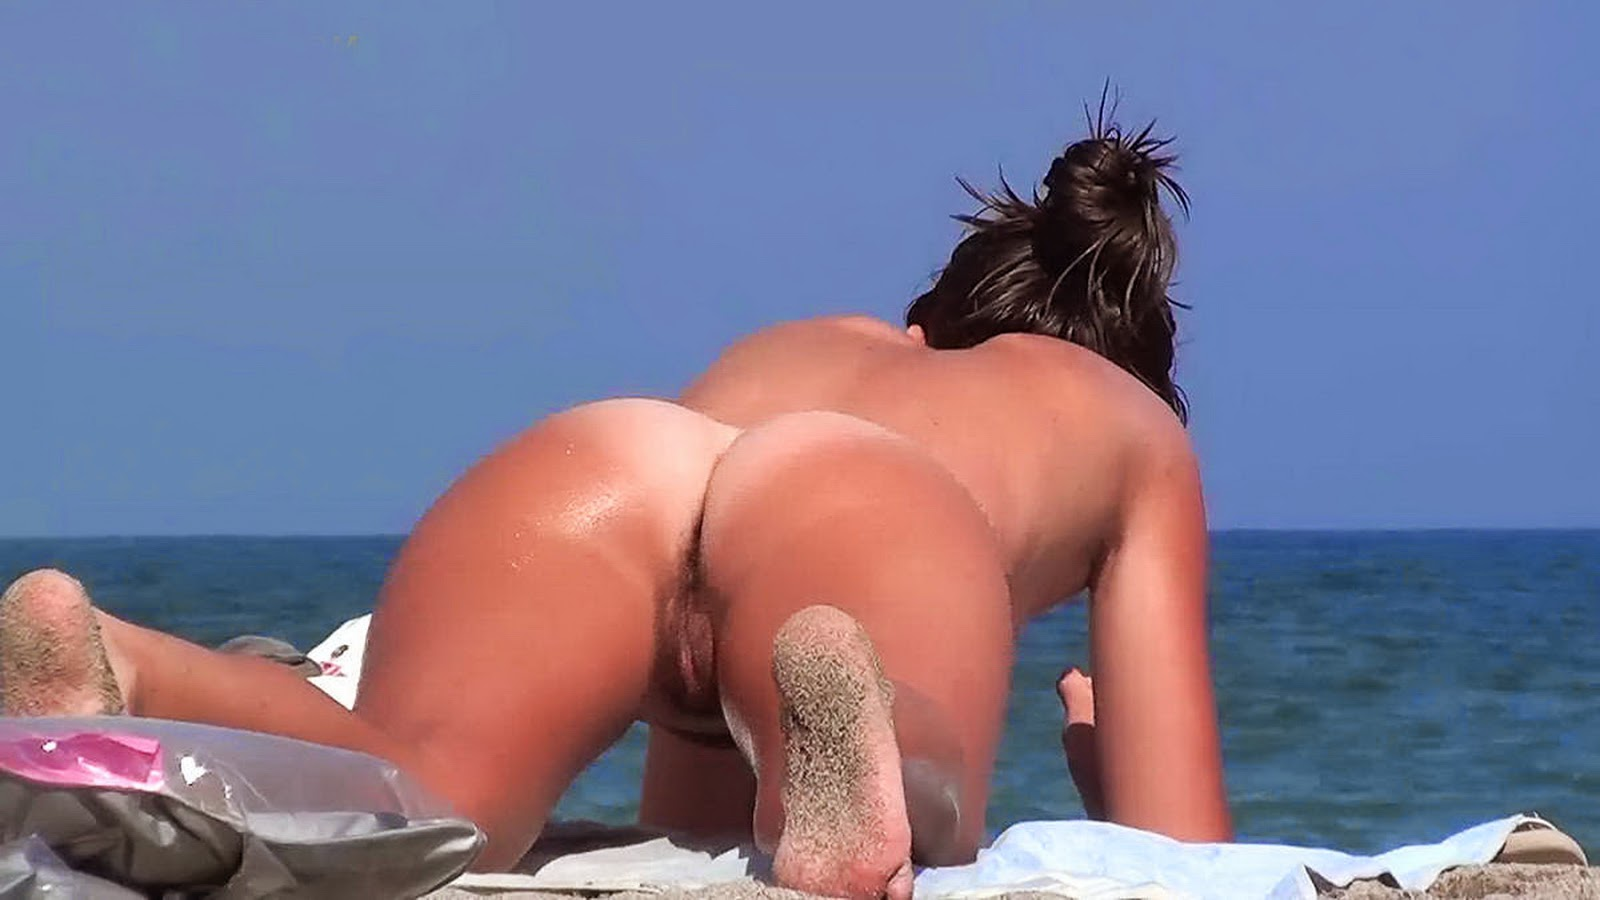 Nudist beaches in spain for singles